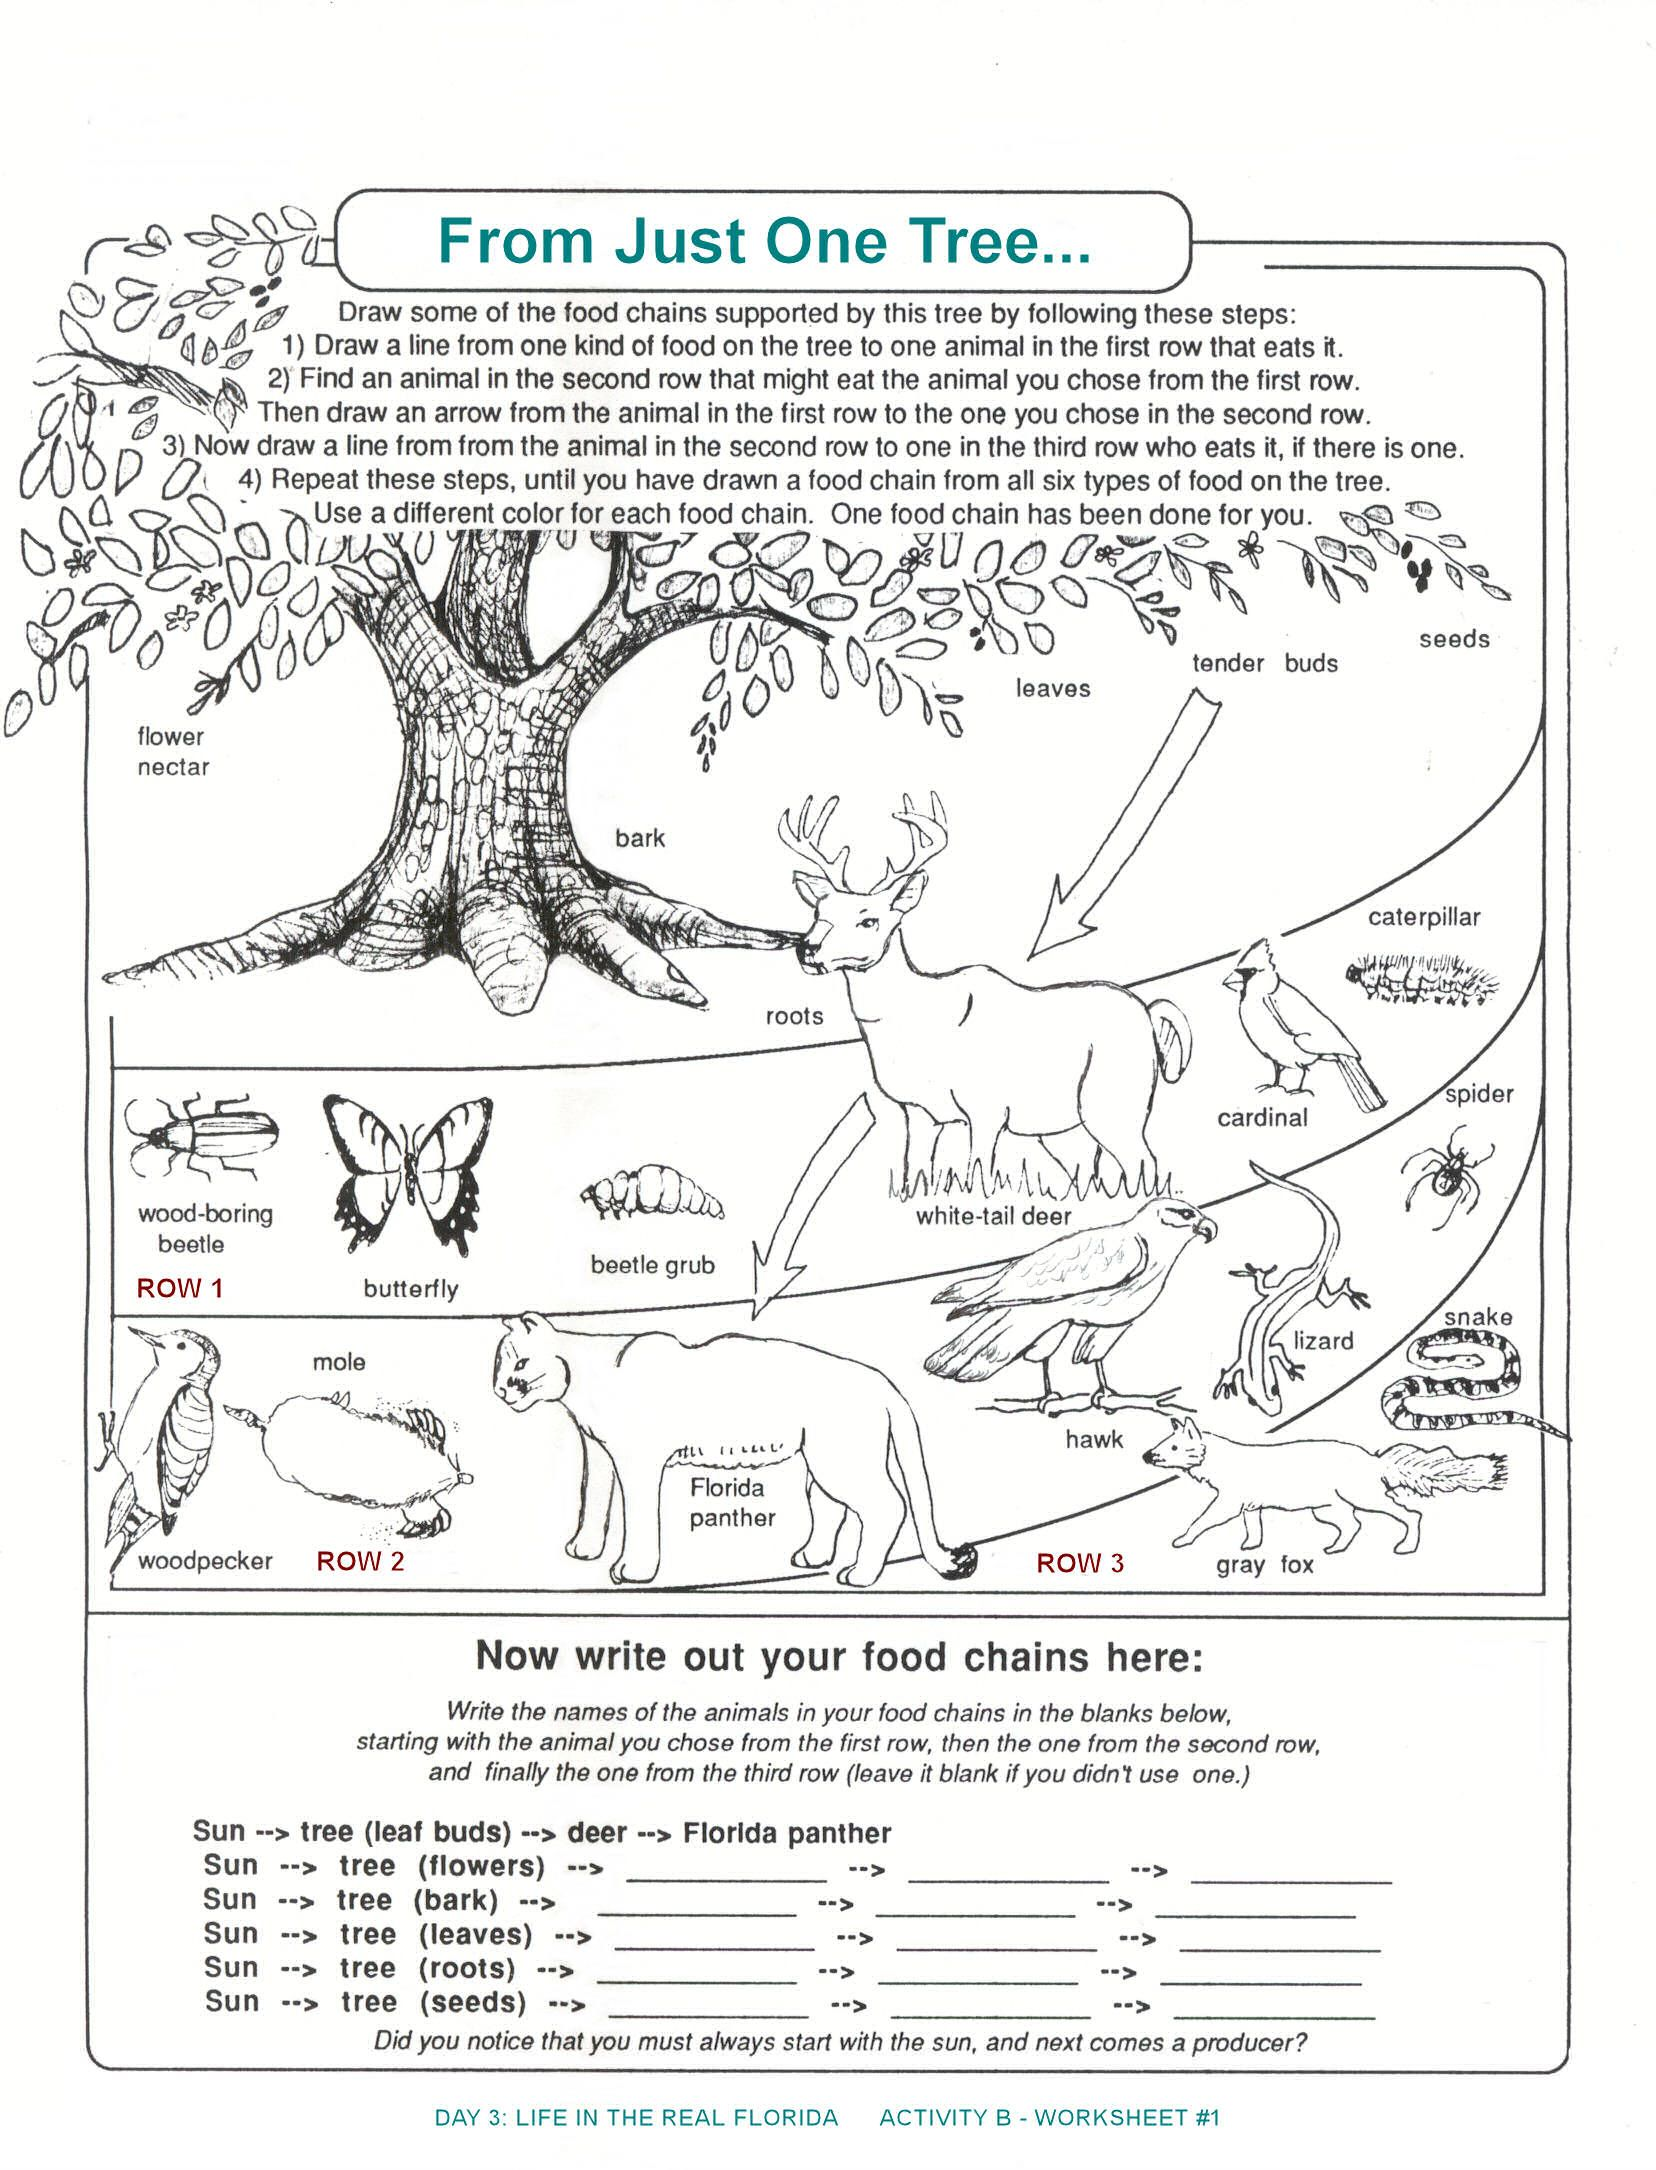 Worksheet Biology Worksheets ecology worksheets for biology 1000 images about ecosystem on pinterest cut and paste food biology